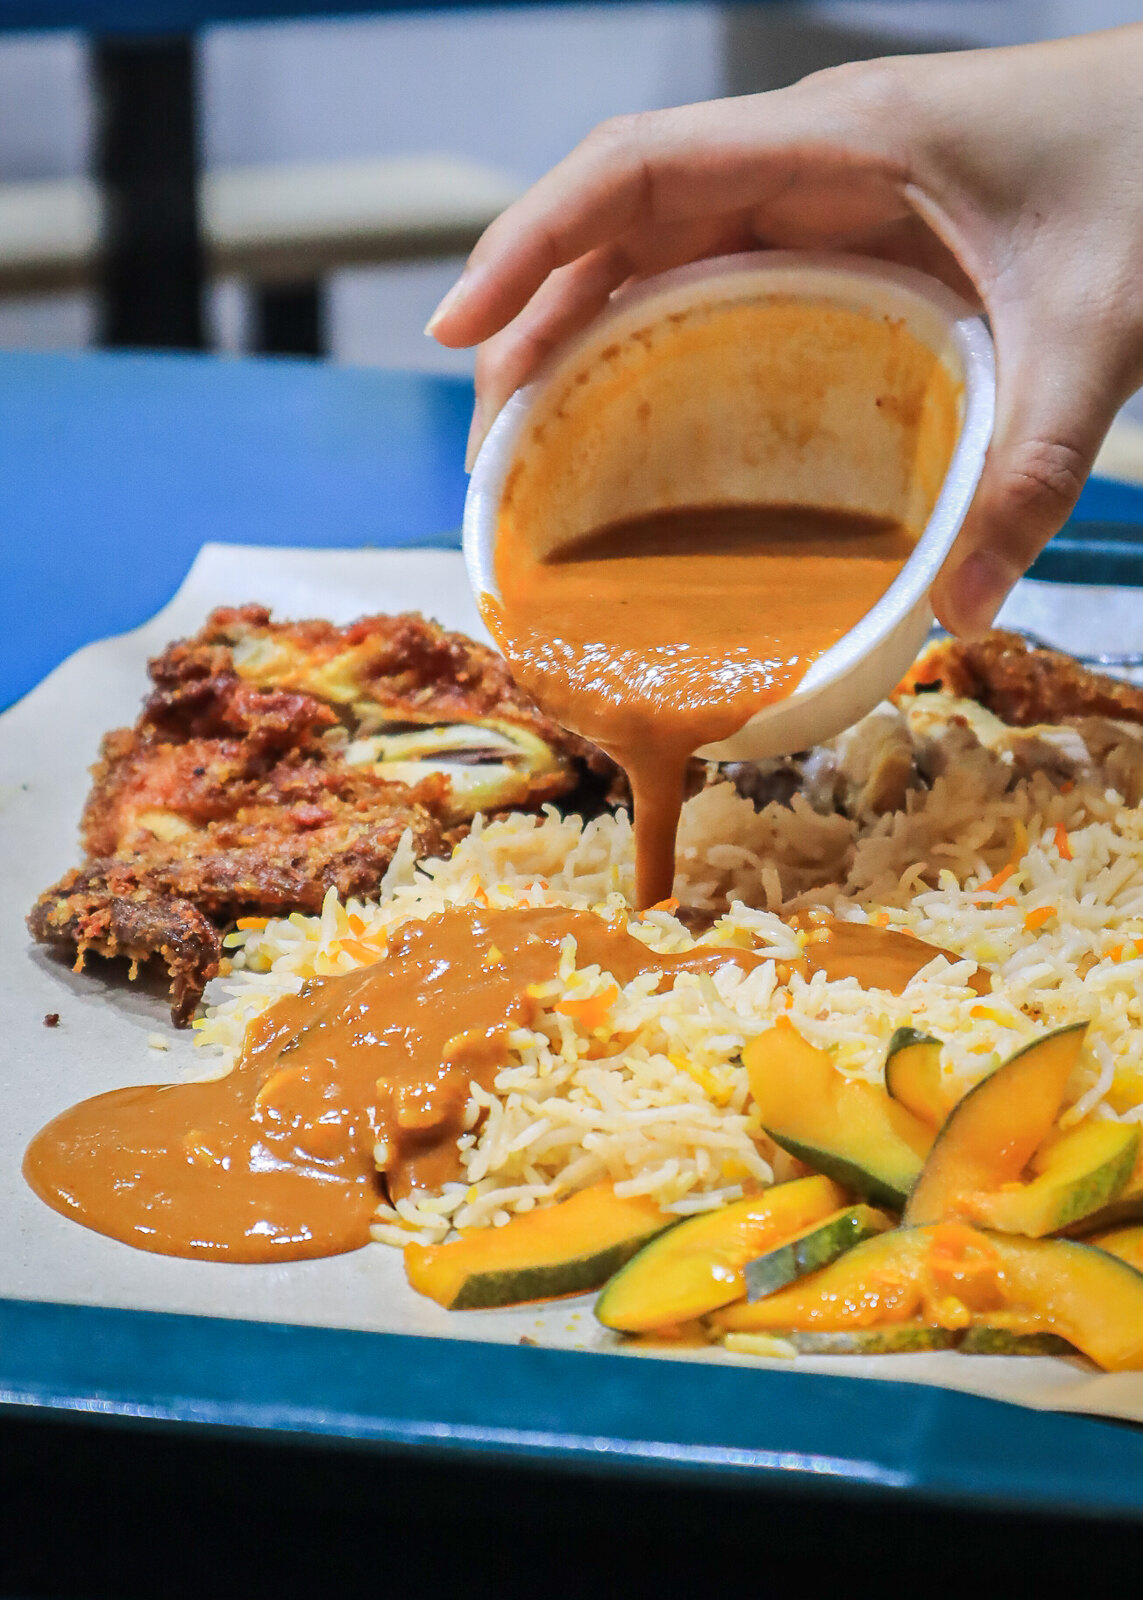 Taman Jurong Market and Food Centre - Sikkander's briyani pour curry